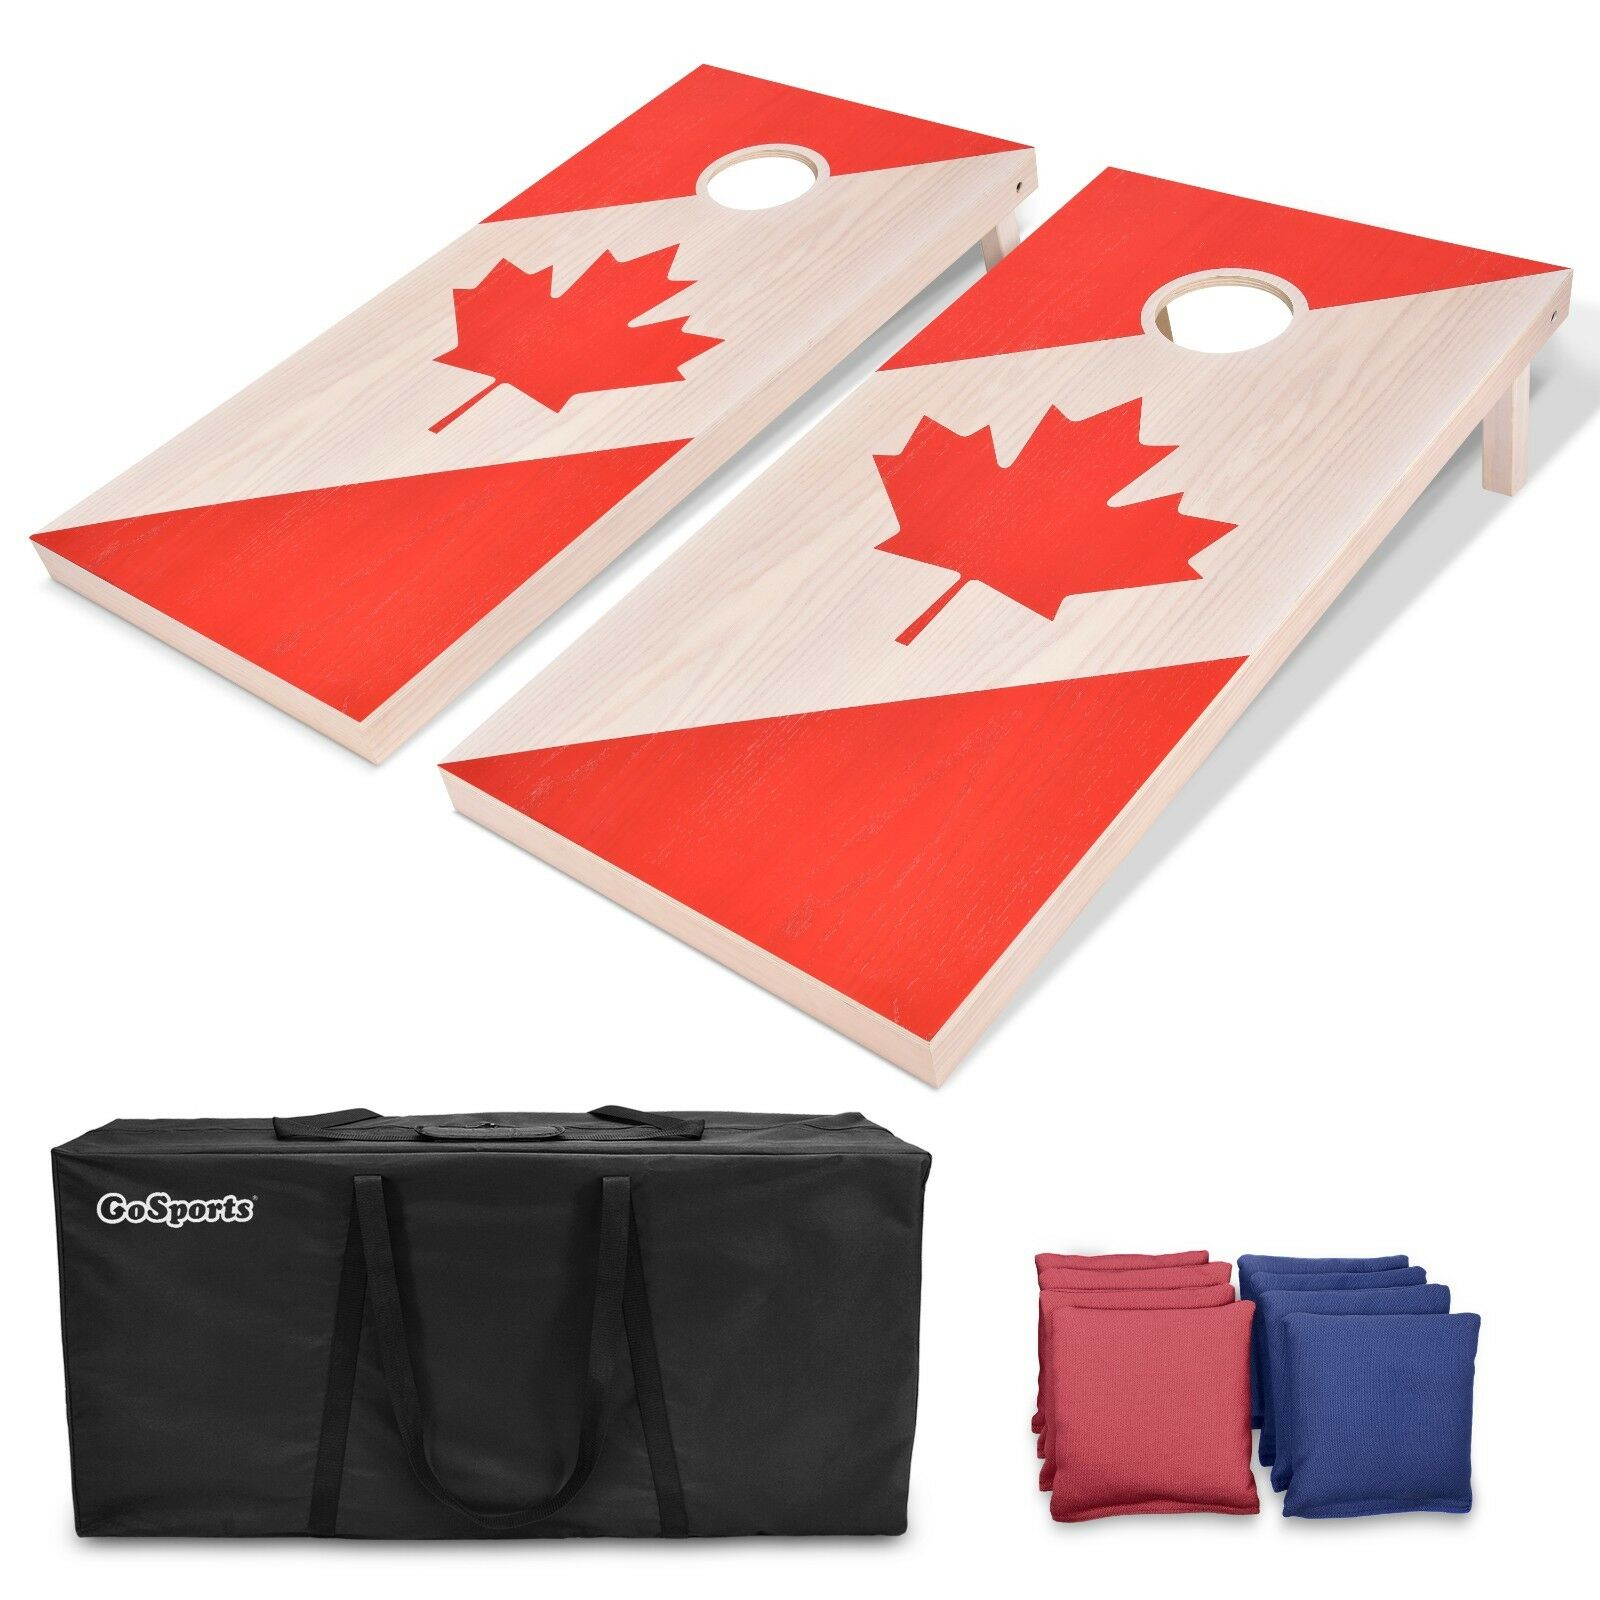 GoSports Canadian Flag Regulation Size 4'x2' Solid Wood Cornhole Game Set